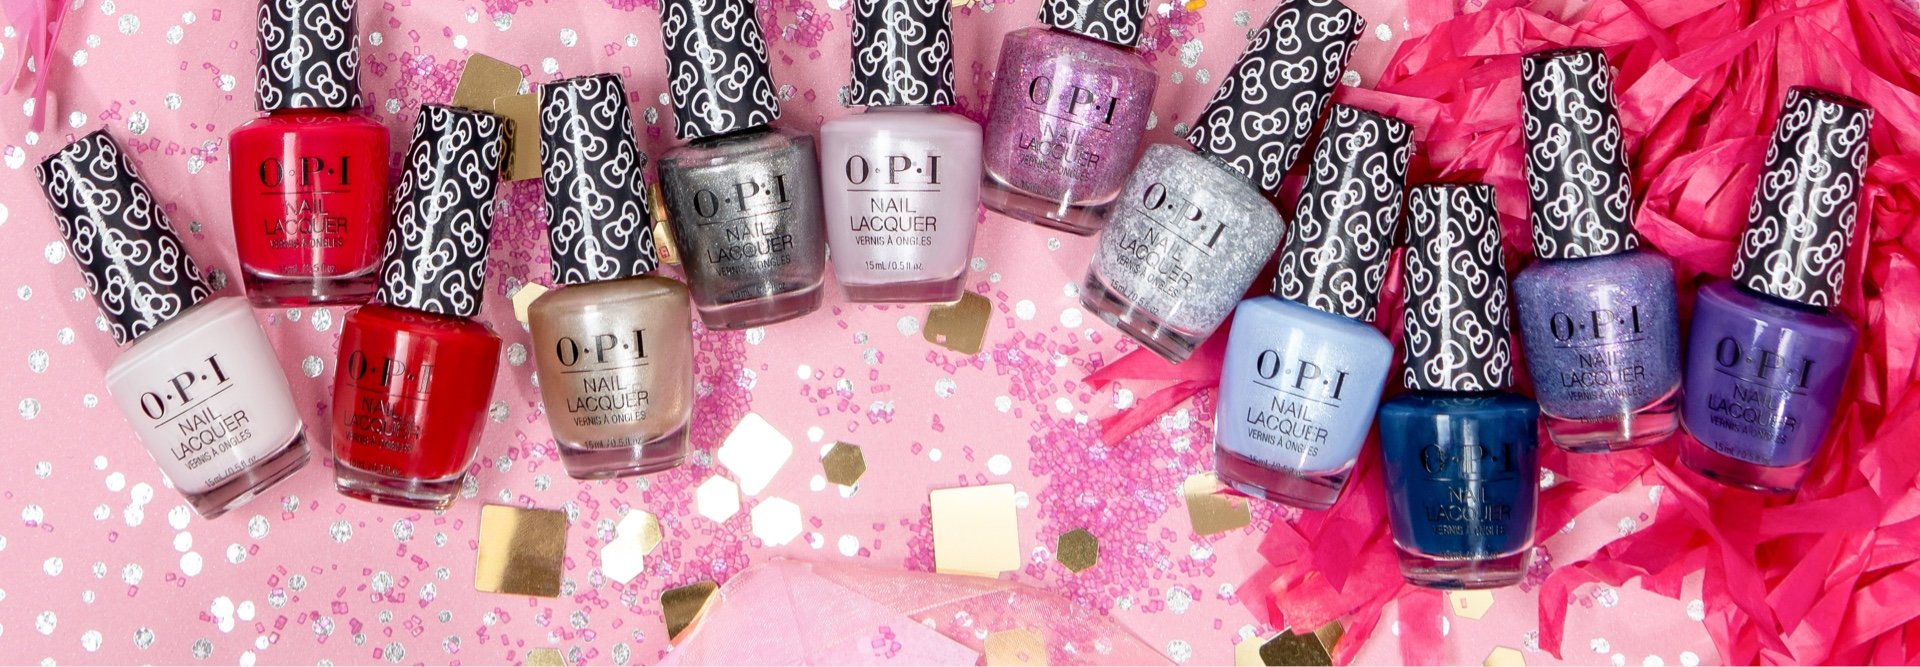 Shop the OPI Hello Kitty Collection